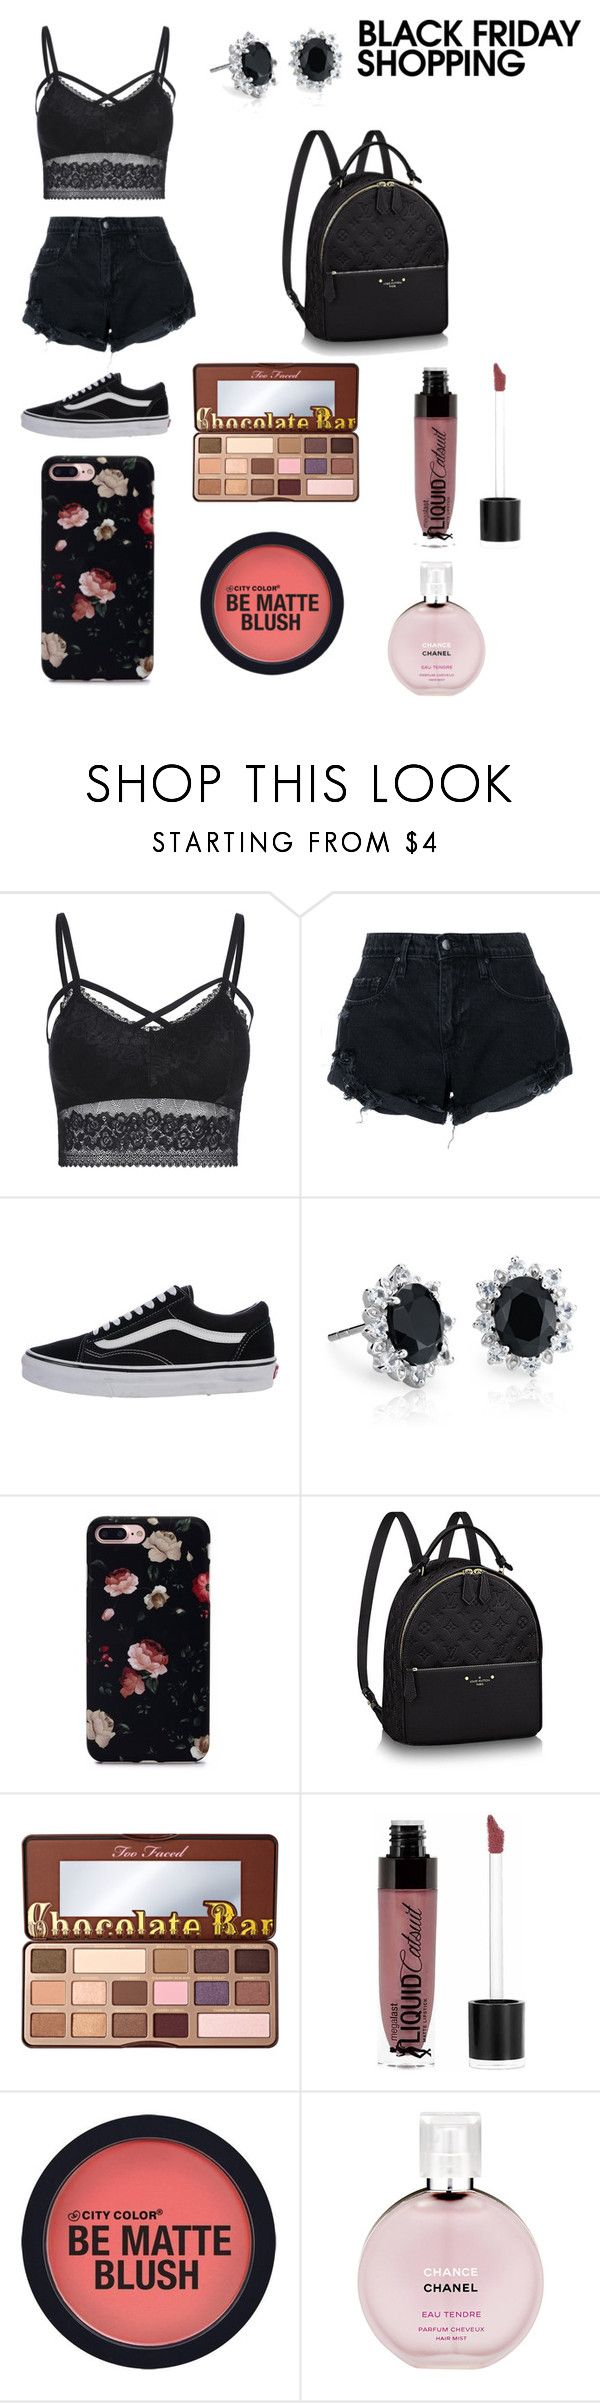 """Black Friday"" by amyrahbam ❤ liked on Polyvore featuring Nobody Denim, Vans, Blue Nile, Too Faced Cosmetics, Wet n Wild and Chanel"